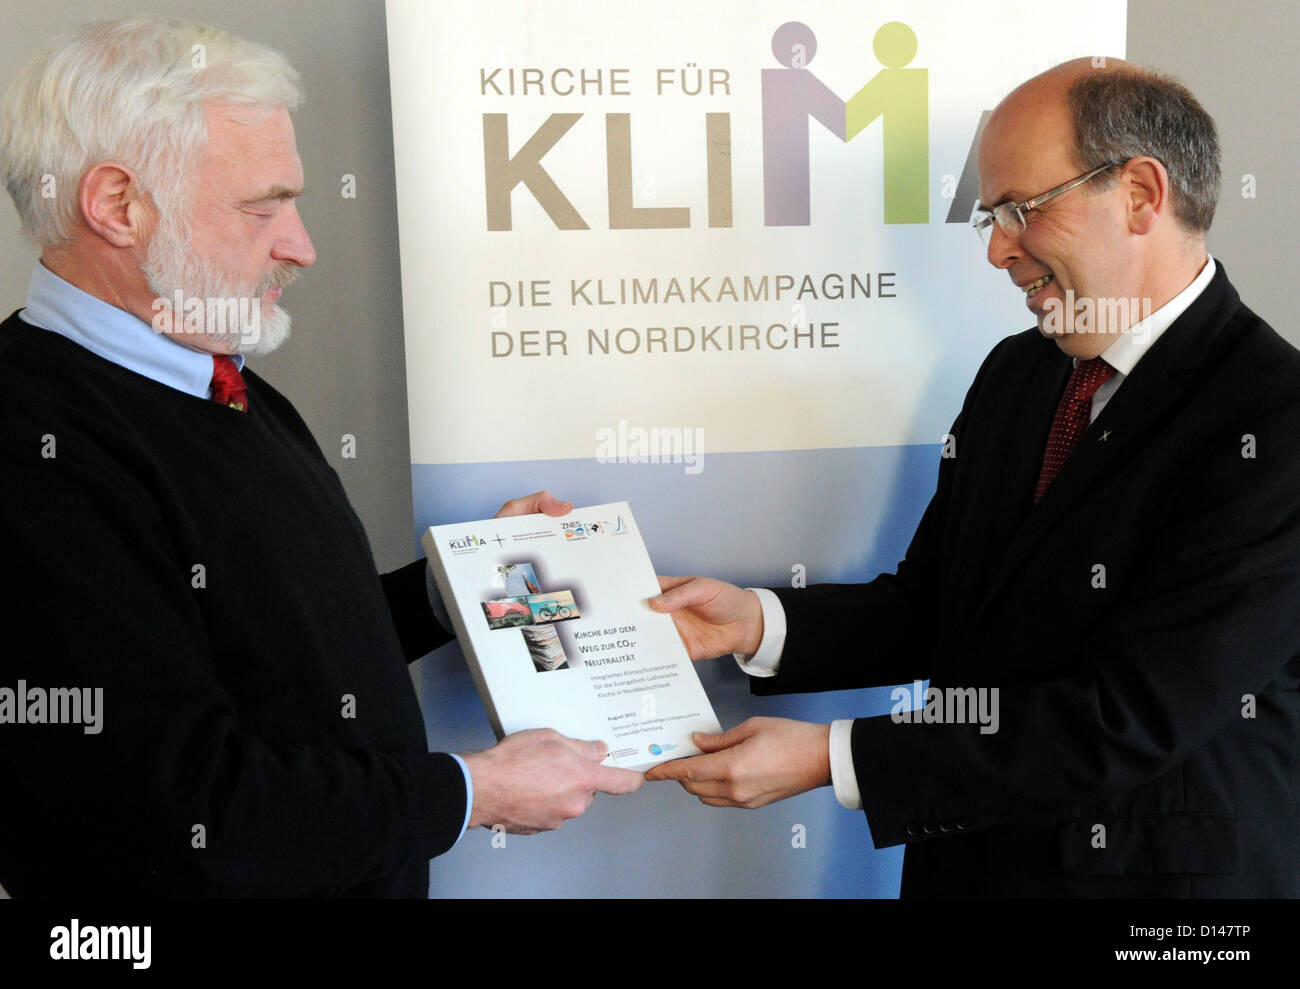 Nobel Prize laureate Olav Hohmeyer (L) from Flensburg University hands over the new climate protection concept of Stock Photo